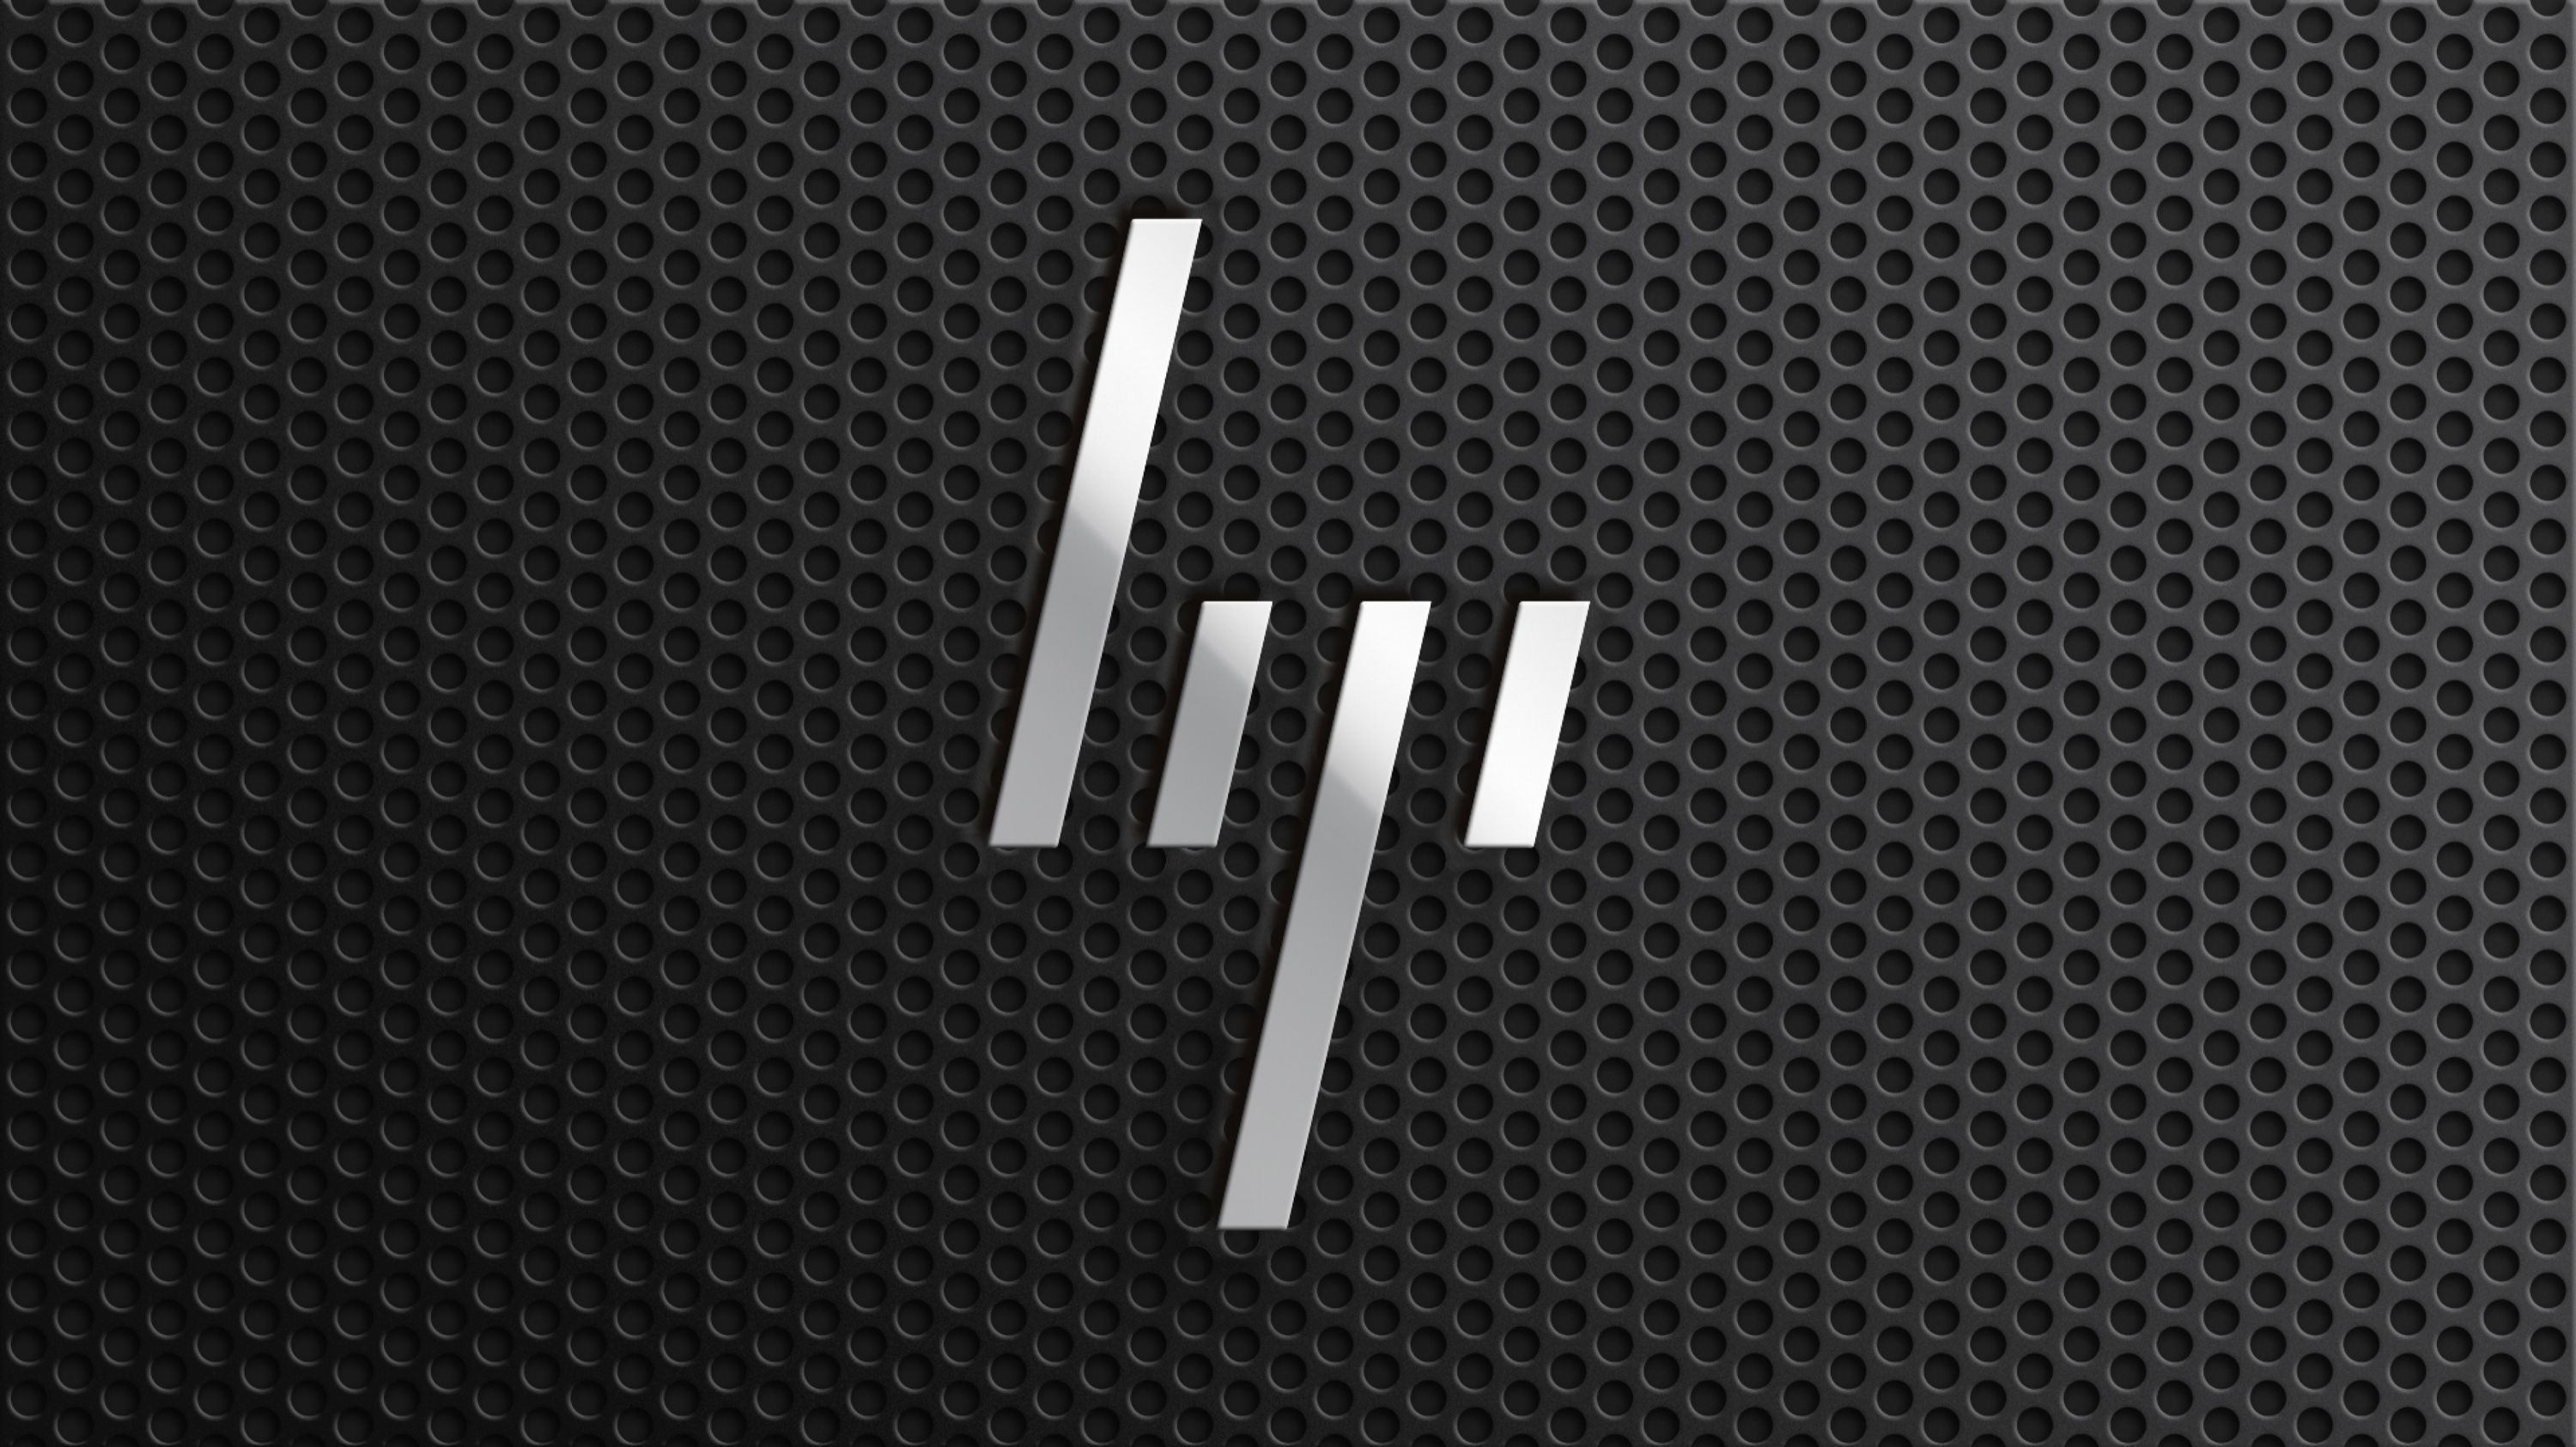 Rebranding Hewlett Packard. The abstract HP insignia that